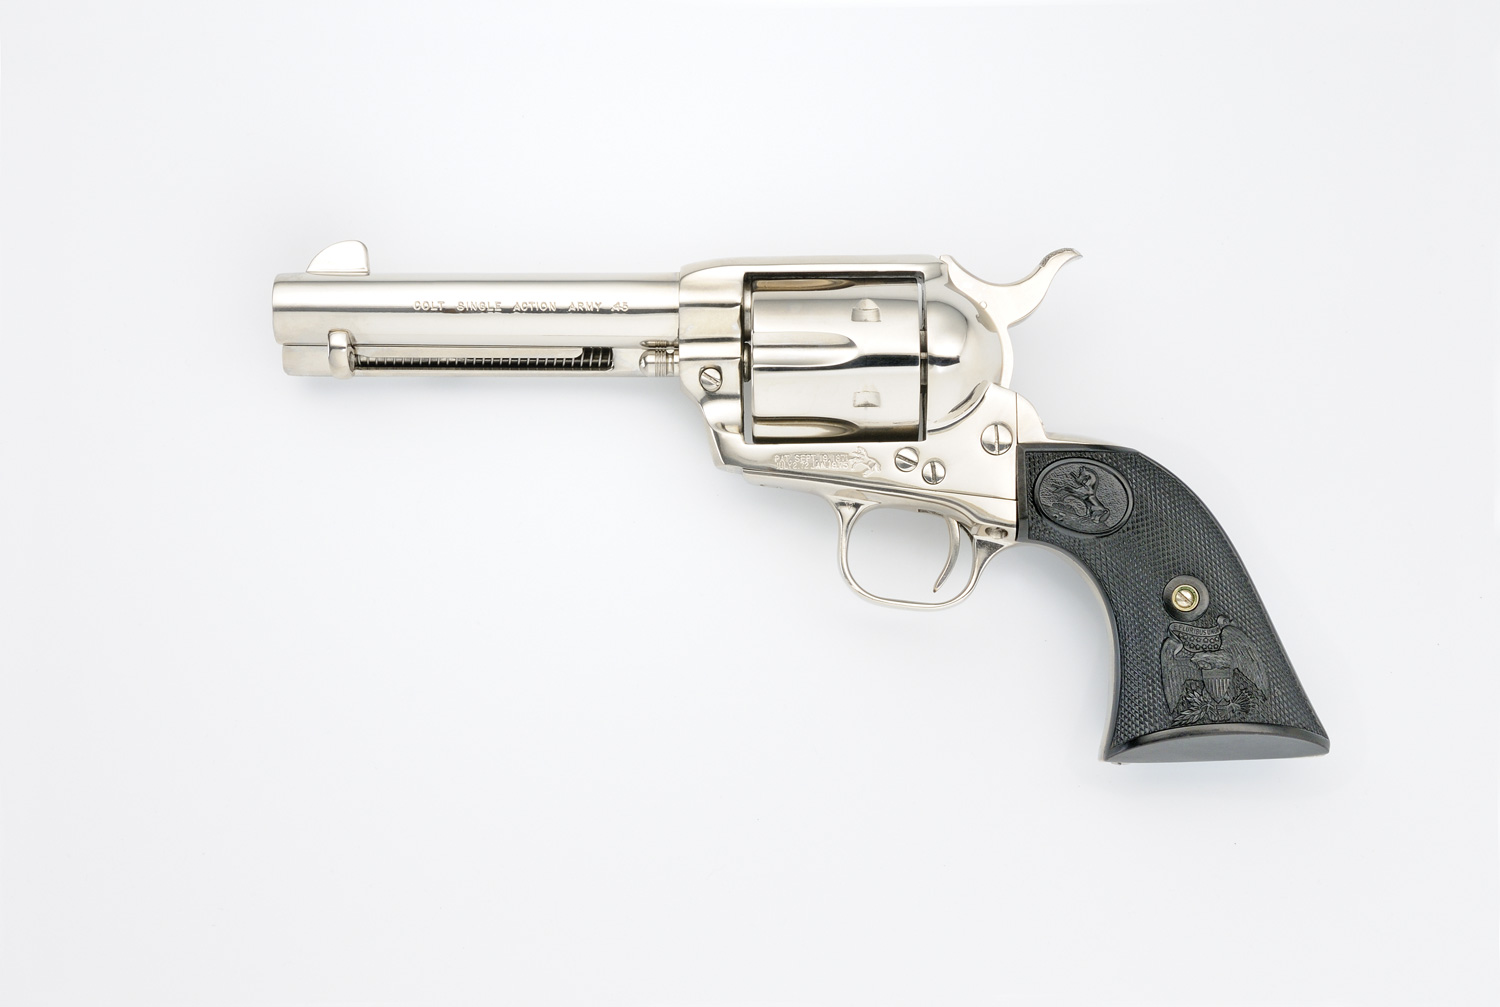 Colt SAA with 4 ¾-inch barrel, chrome left side